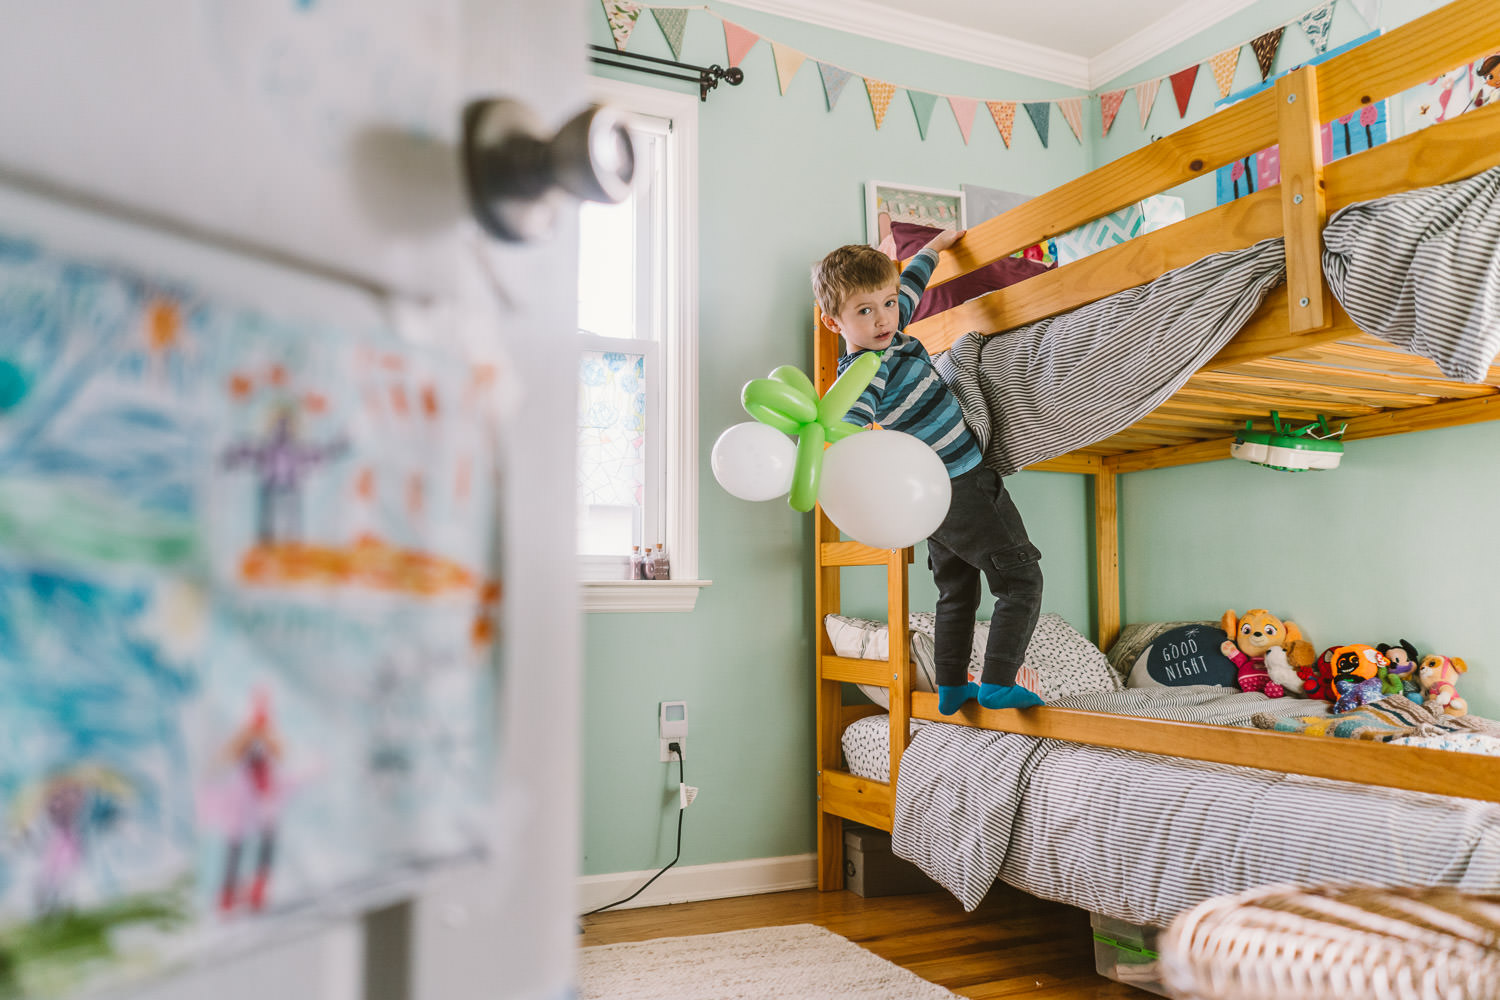 A little boy throws a balloon off a bunkbed.